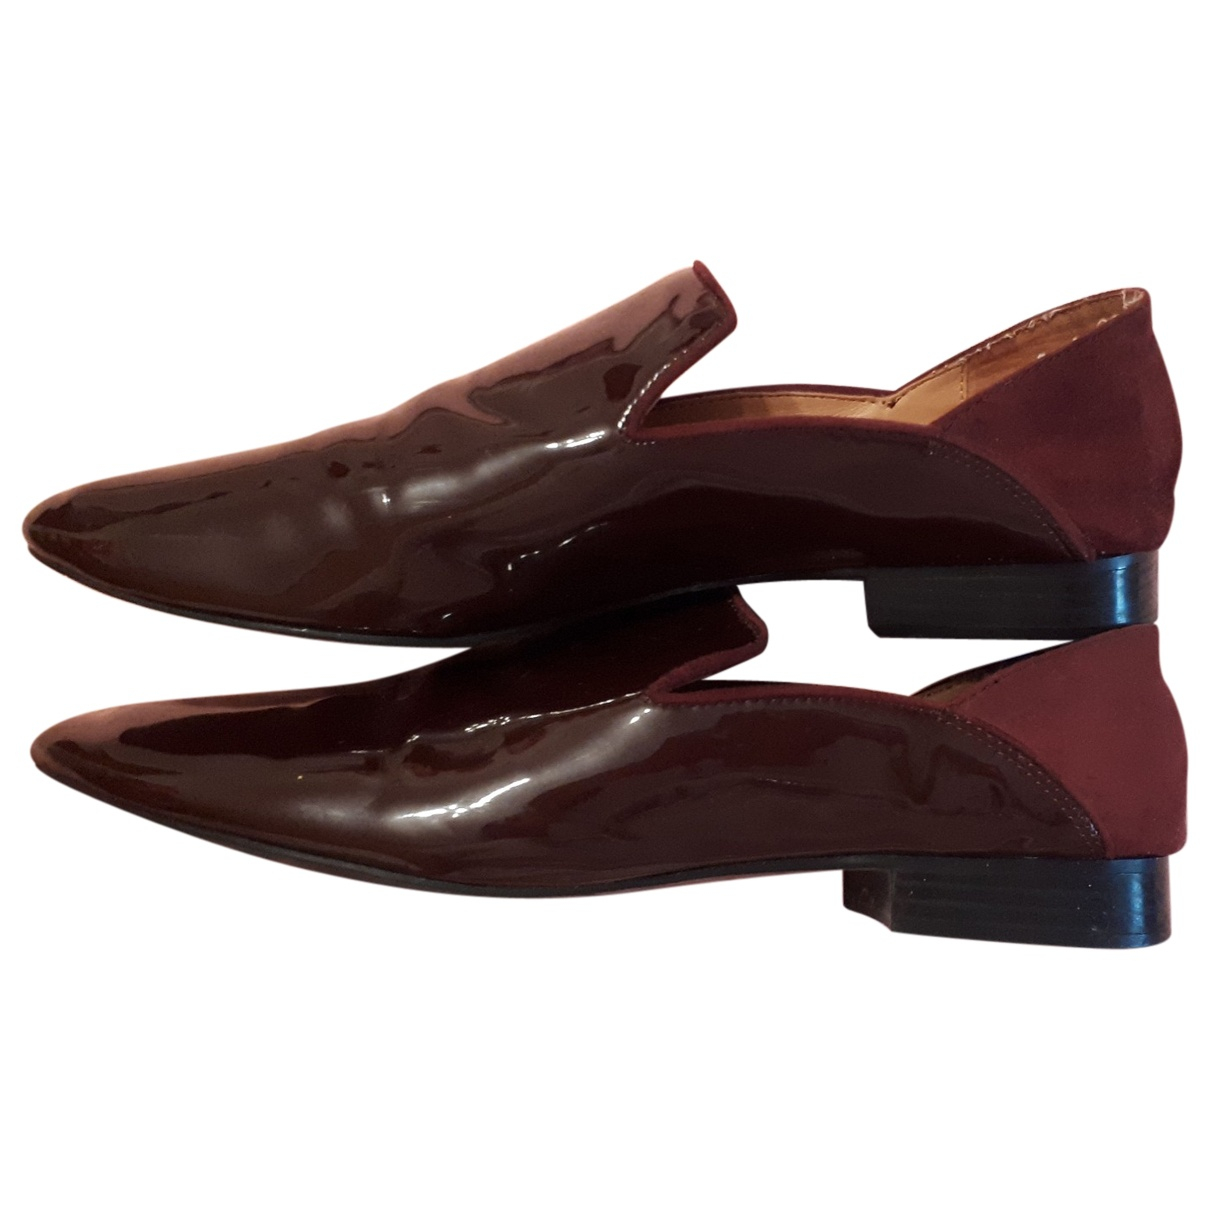 Zara \N Burgundy Patent leather Flats for Women 37 EU